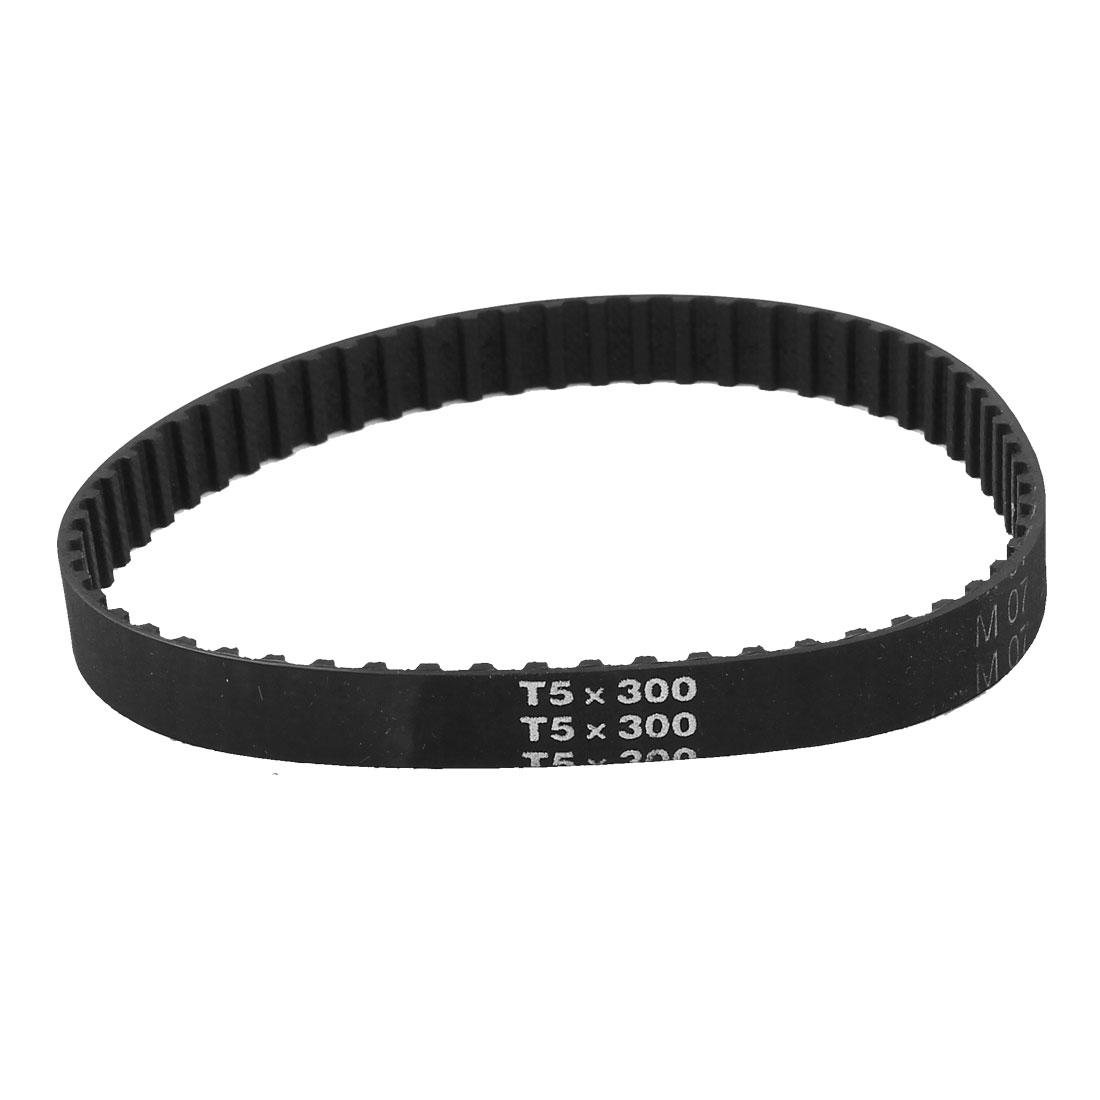 T5x300 60 Teeth 5mm Pitch 10mm Wide 300mm Girth Industrial Timing Belt